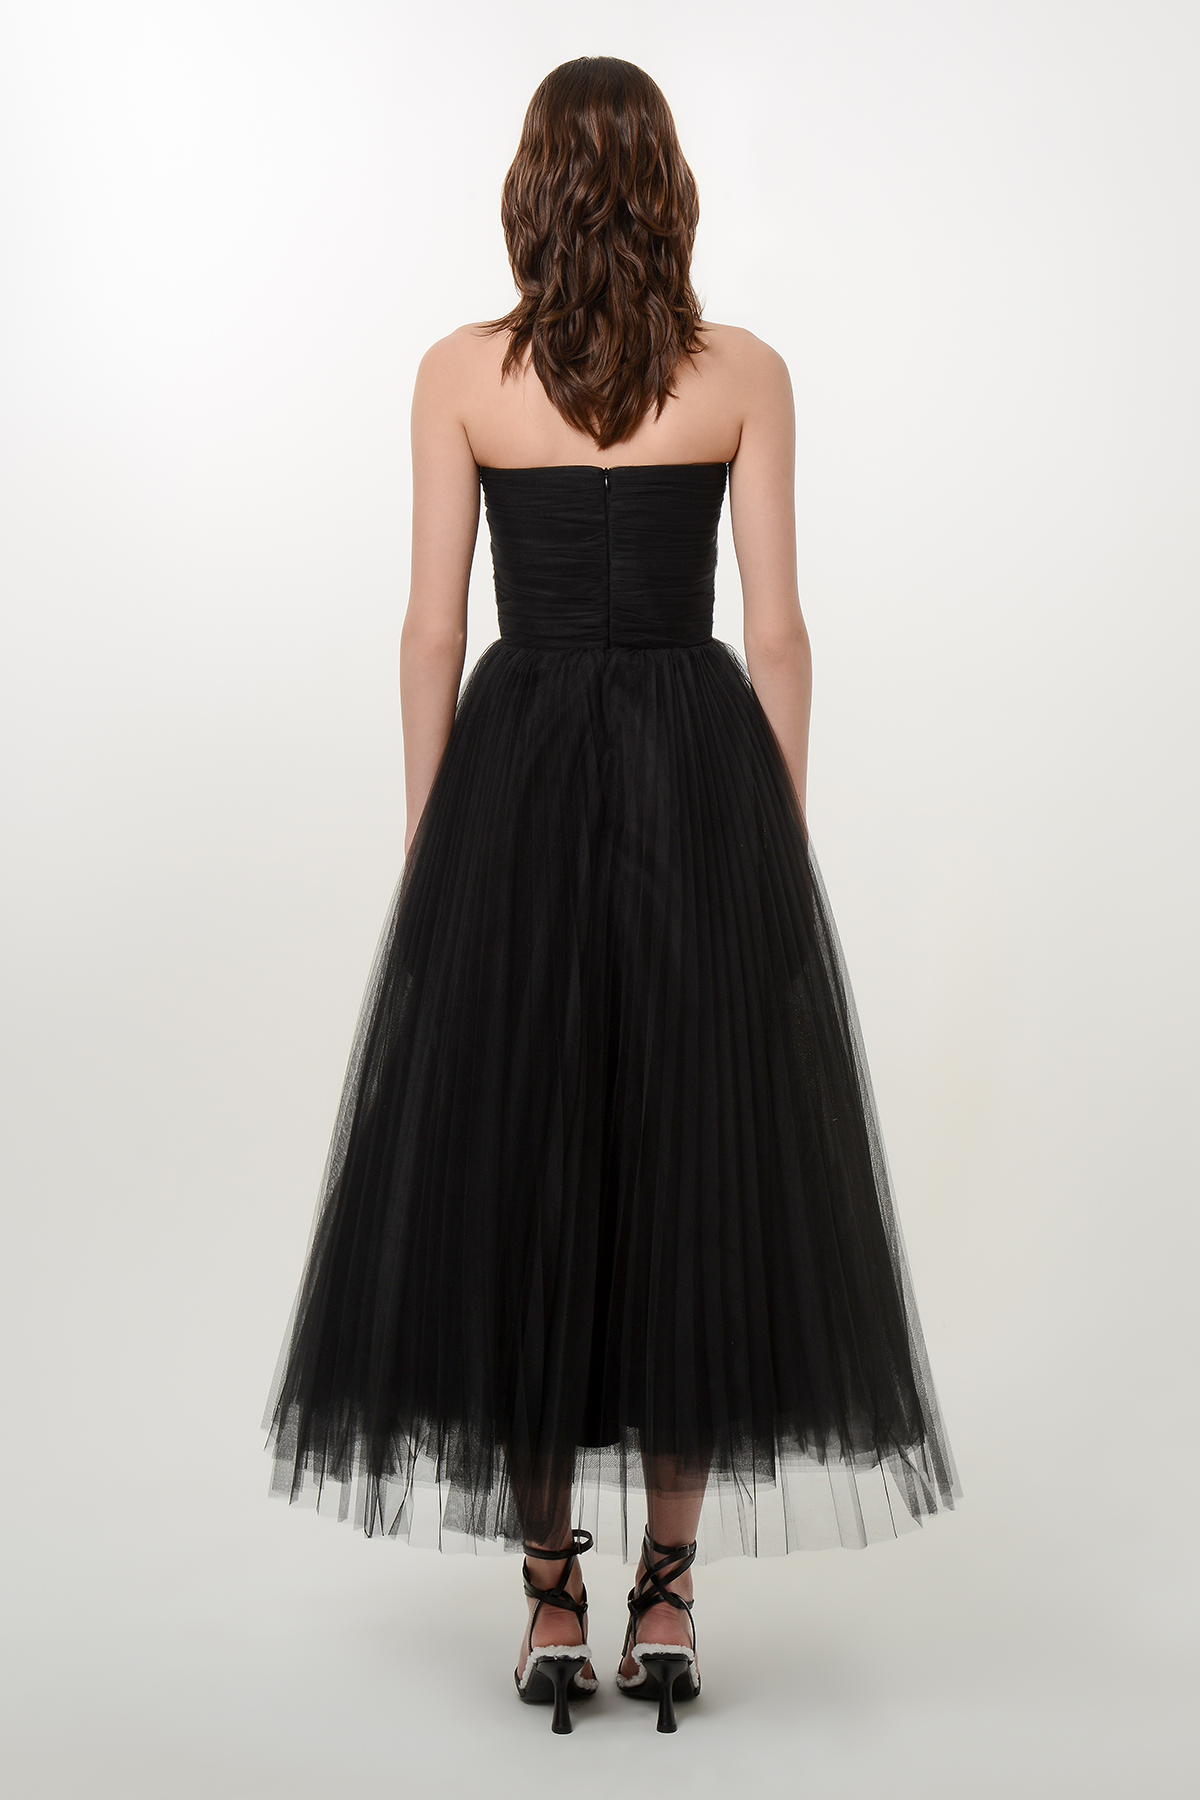 Corset style tulle dress with crystals 2